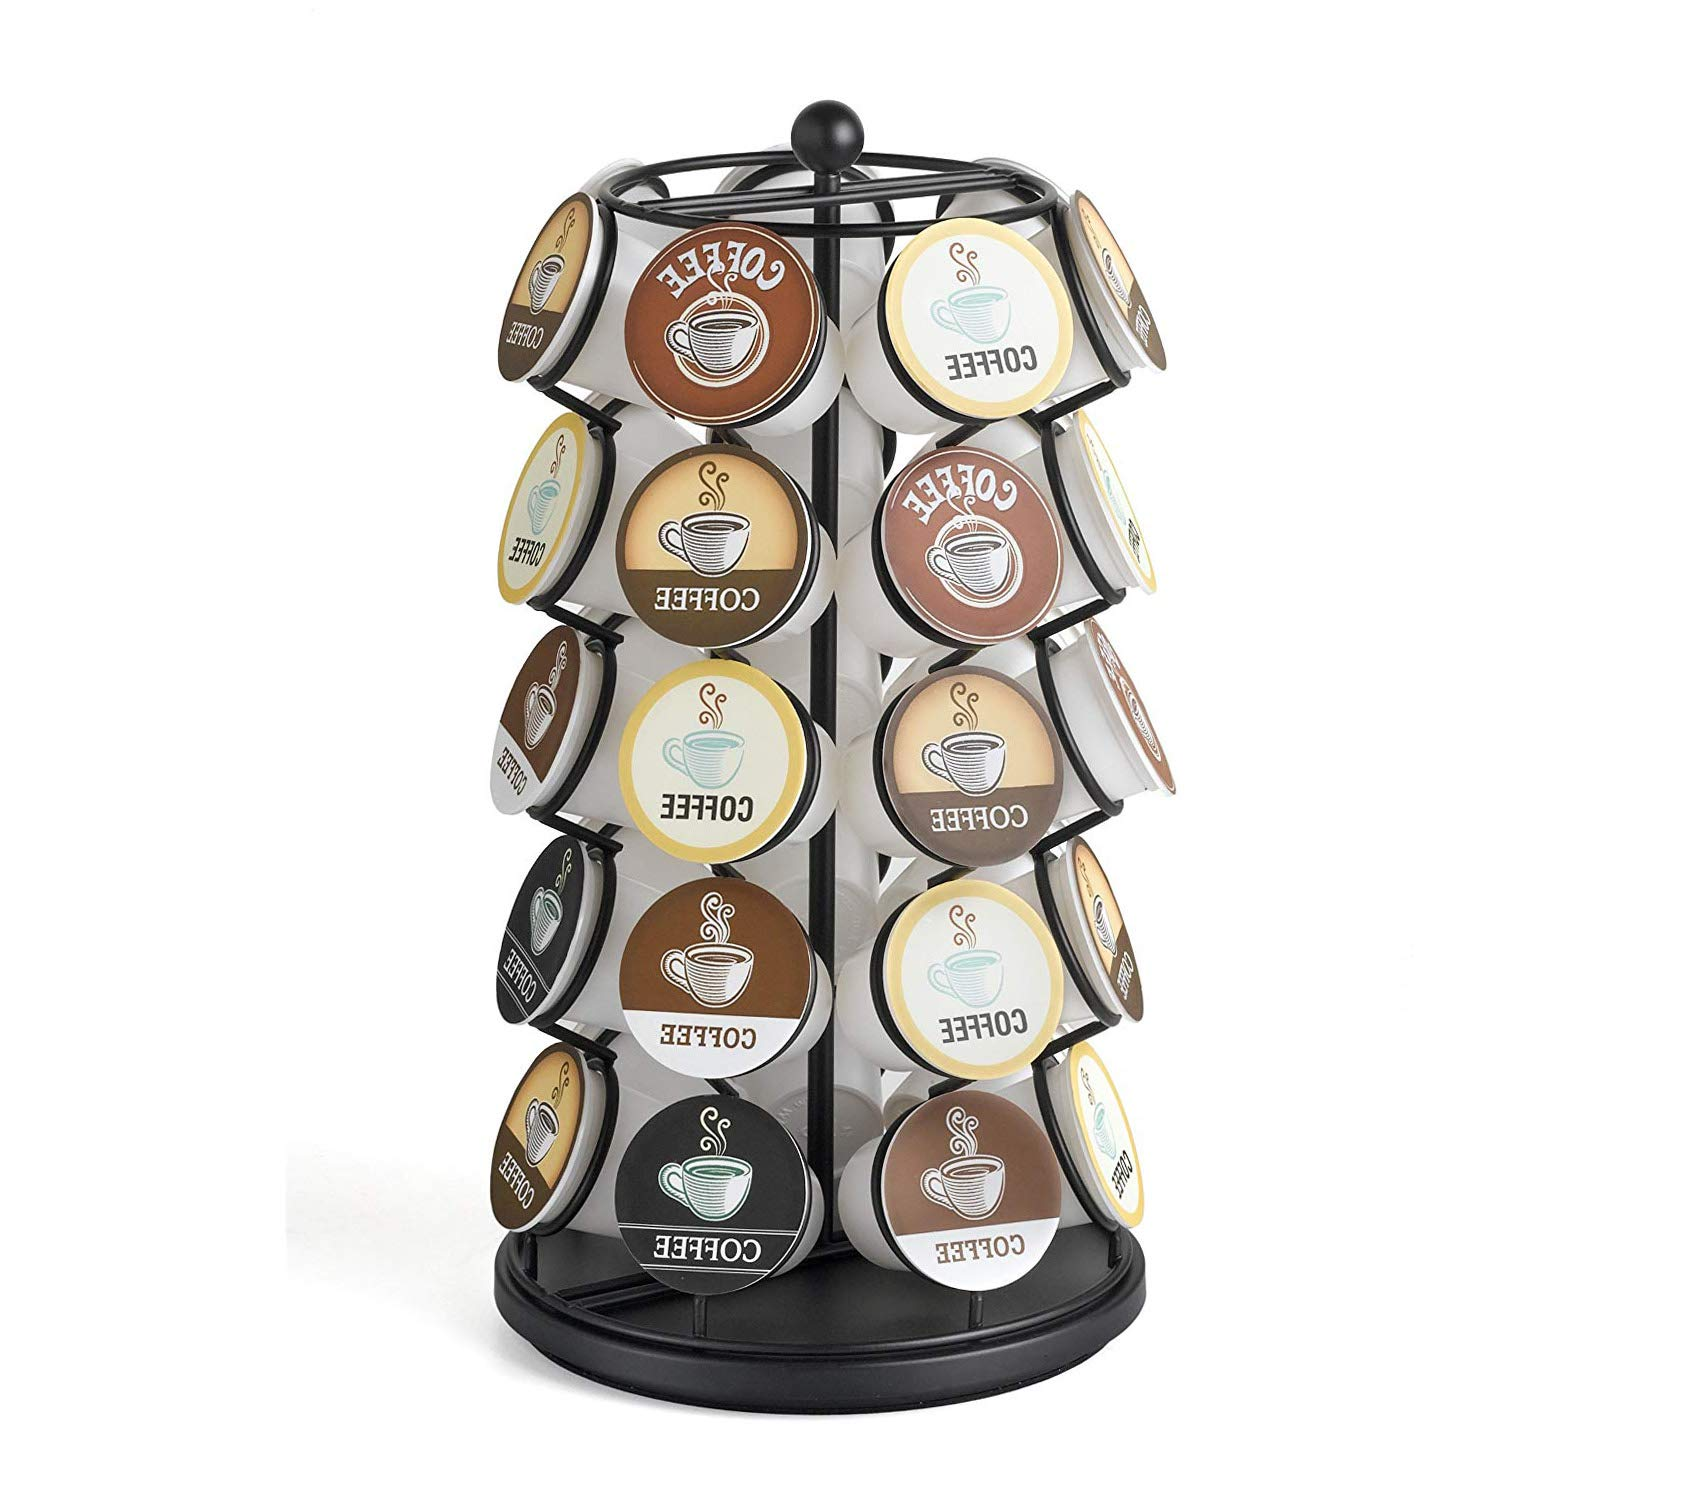 Wood & Style Premium Carousel - Holds 35 K-Cups in Black Storage